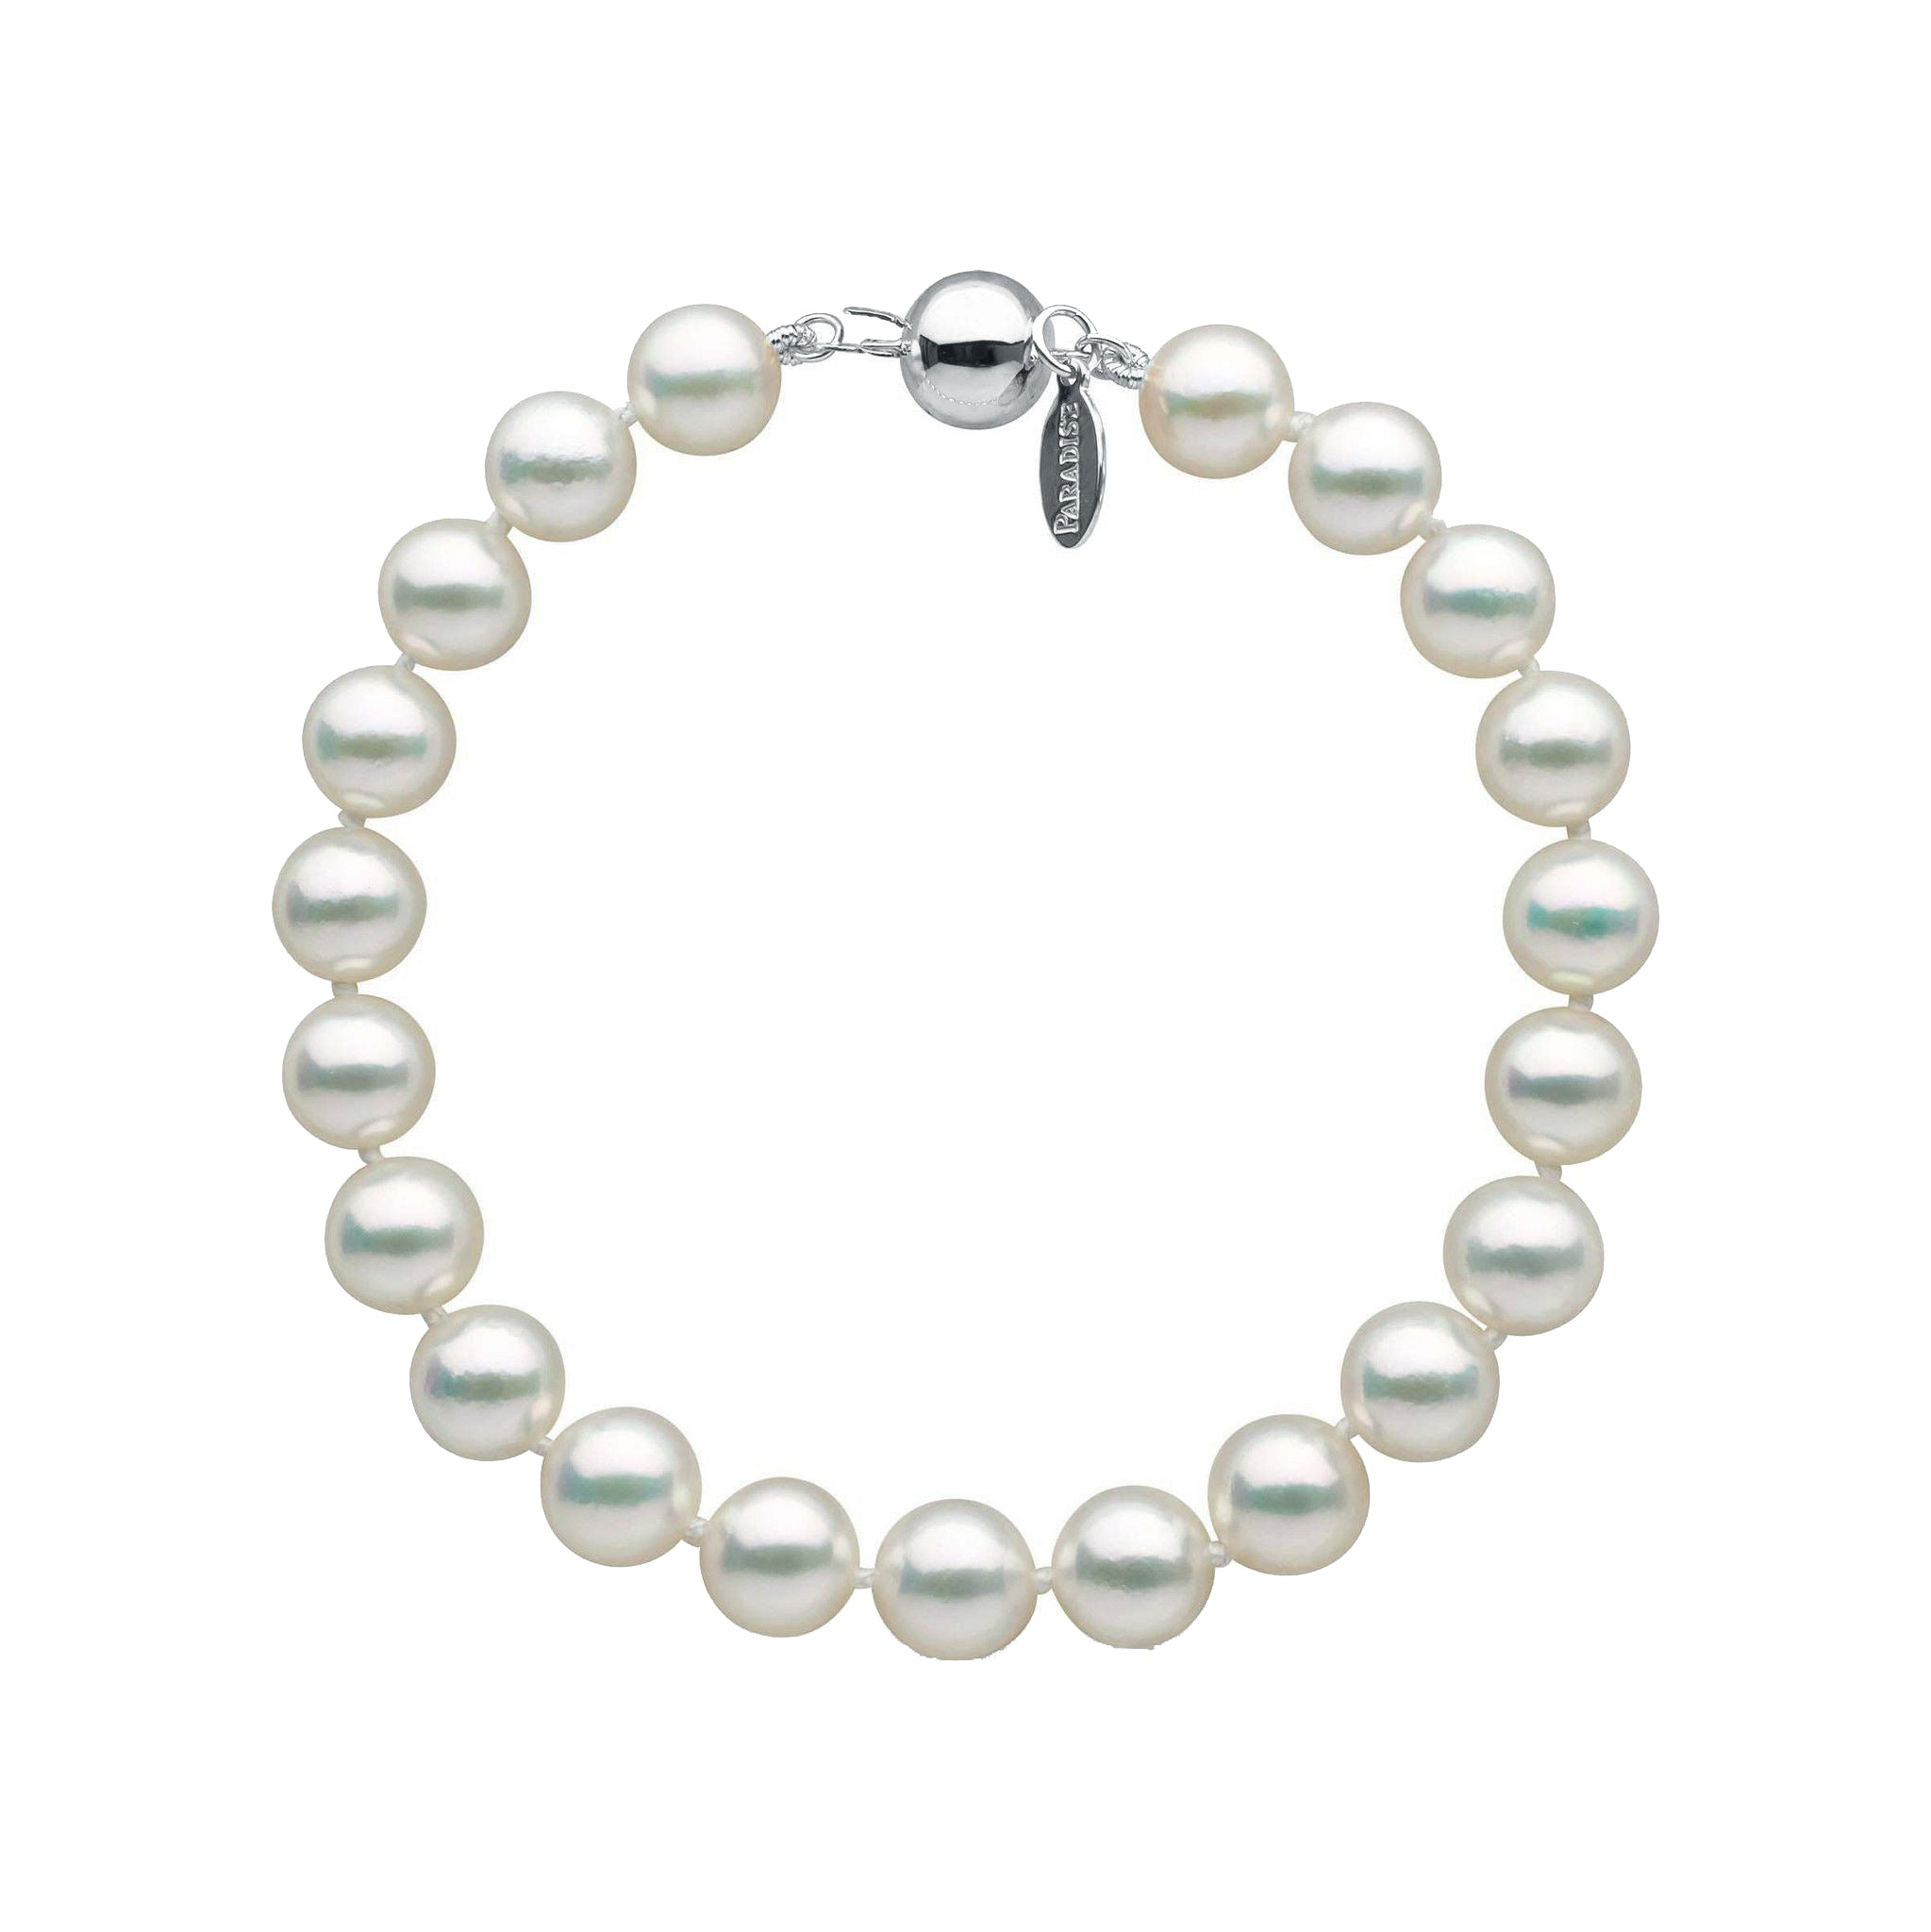 7.5-8.0 mm Natural White Hanadama Akoya Pearl Bracelet